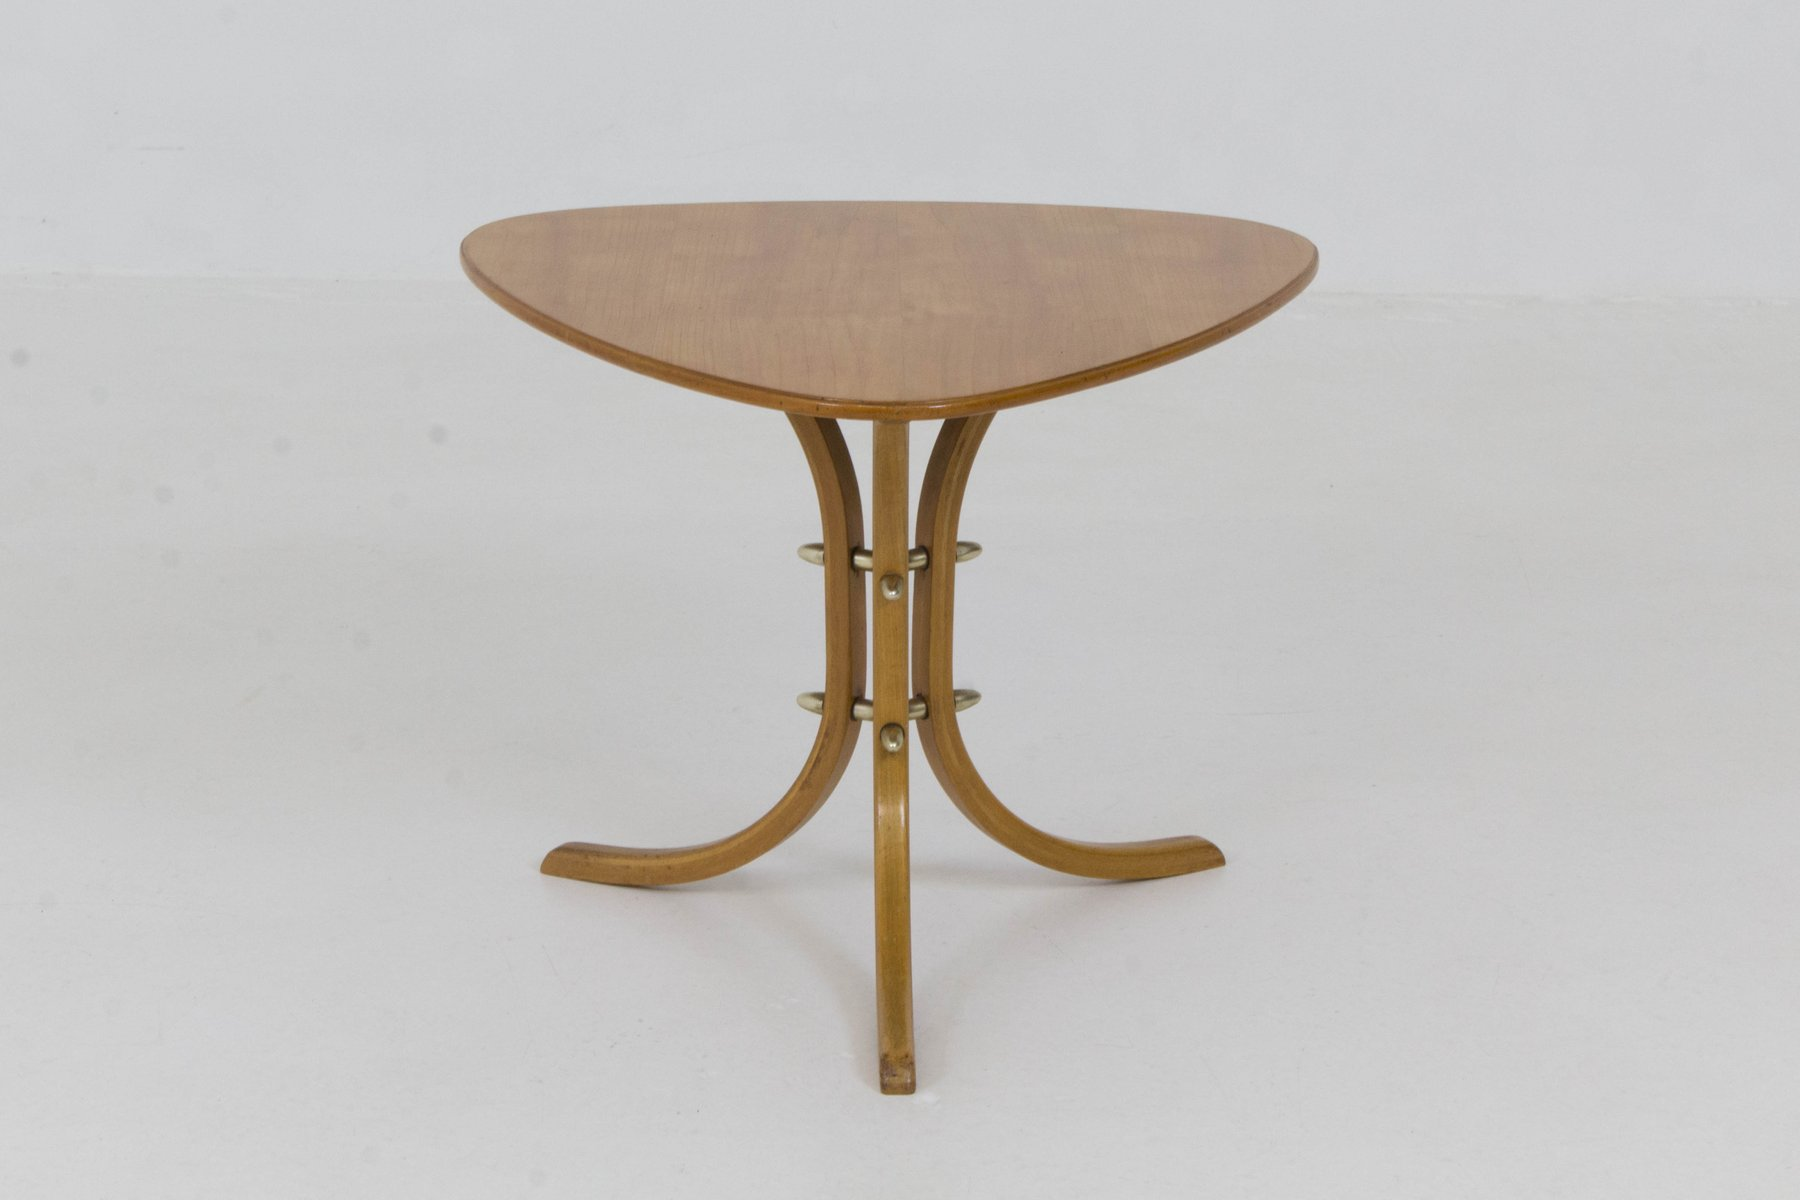 Mid century modern cocktail table 1970s for sale at pamono for Cocktail tables for sale used